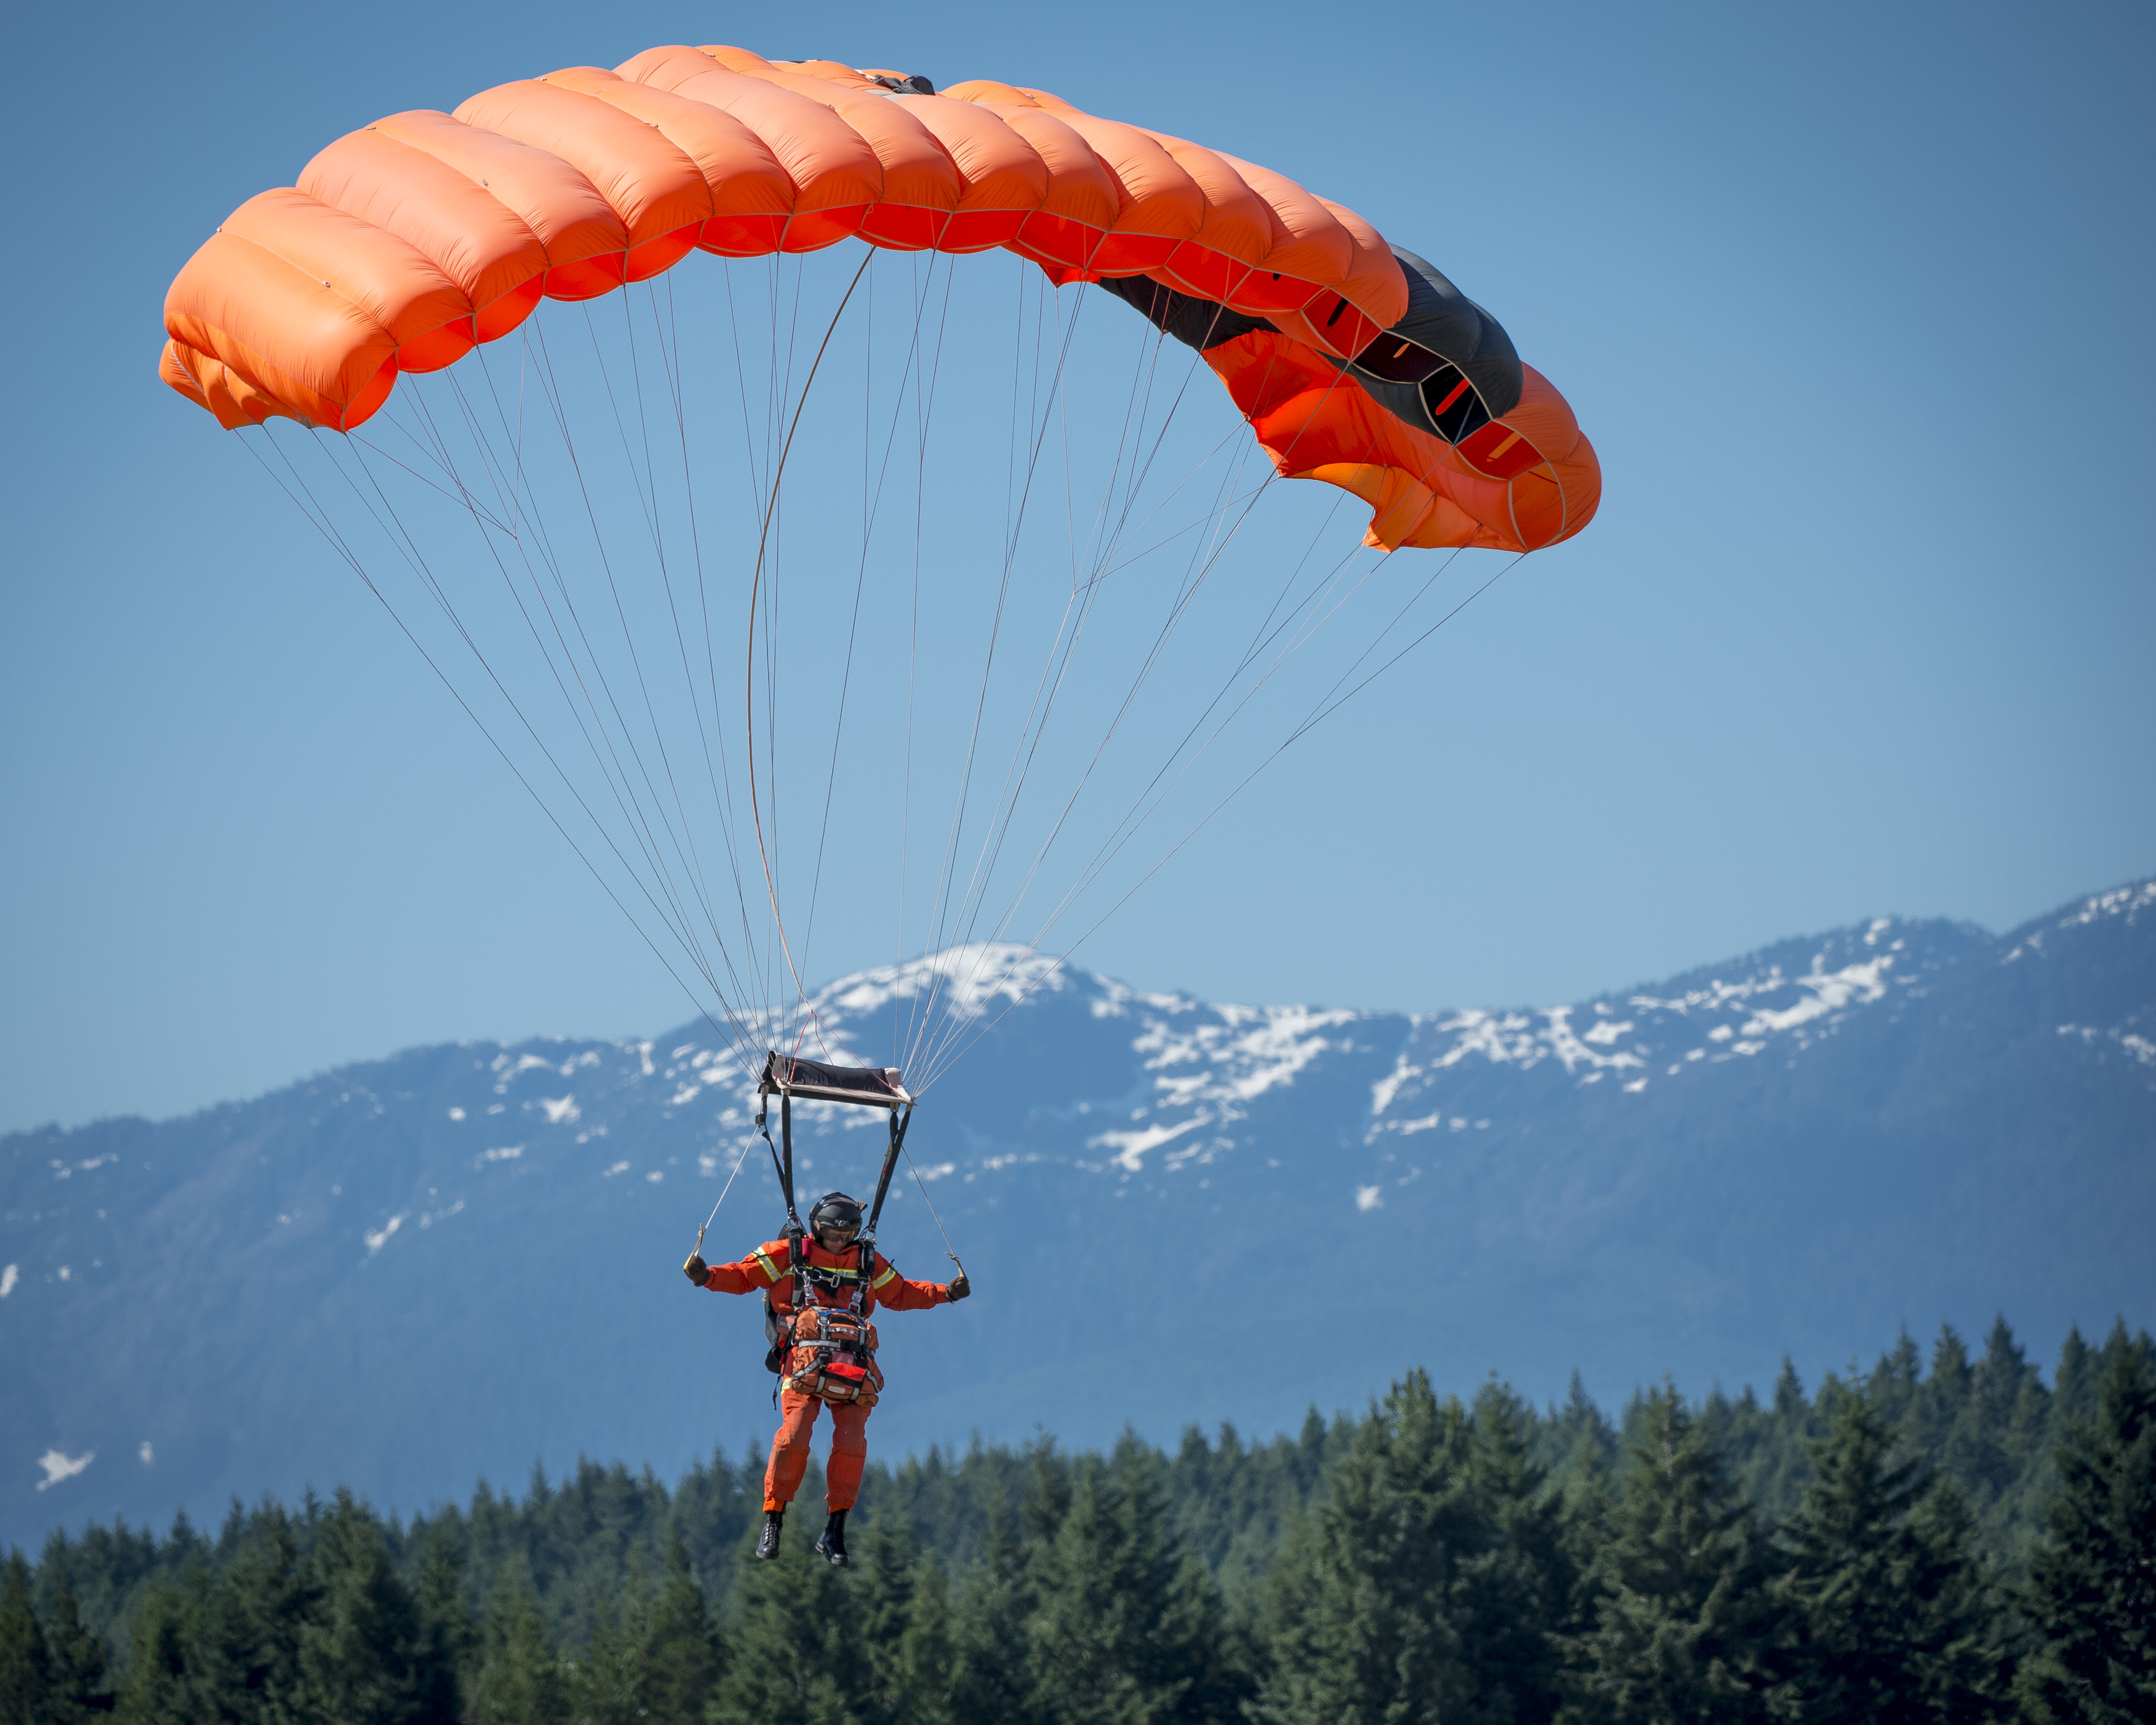 A person in a bright orange jumps suit is suspended in the air from an orange rectangular parachute. A range of snow-topped mountains is in the background.